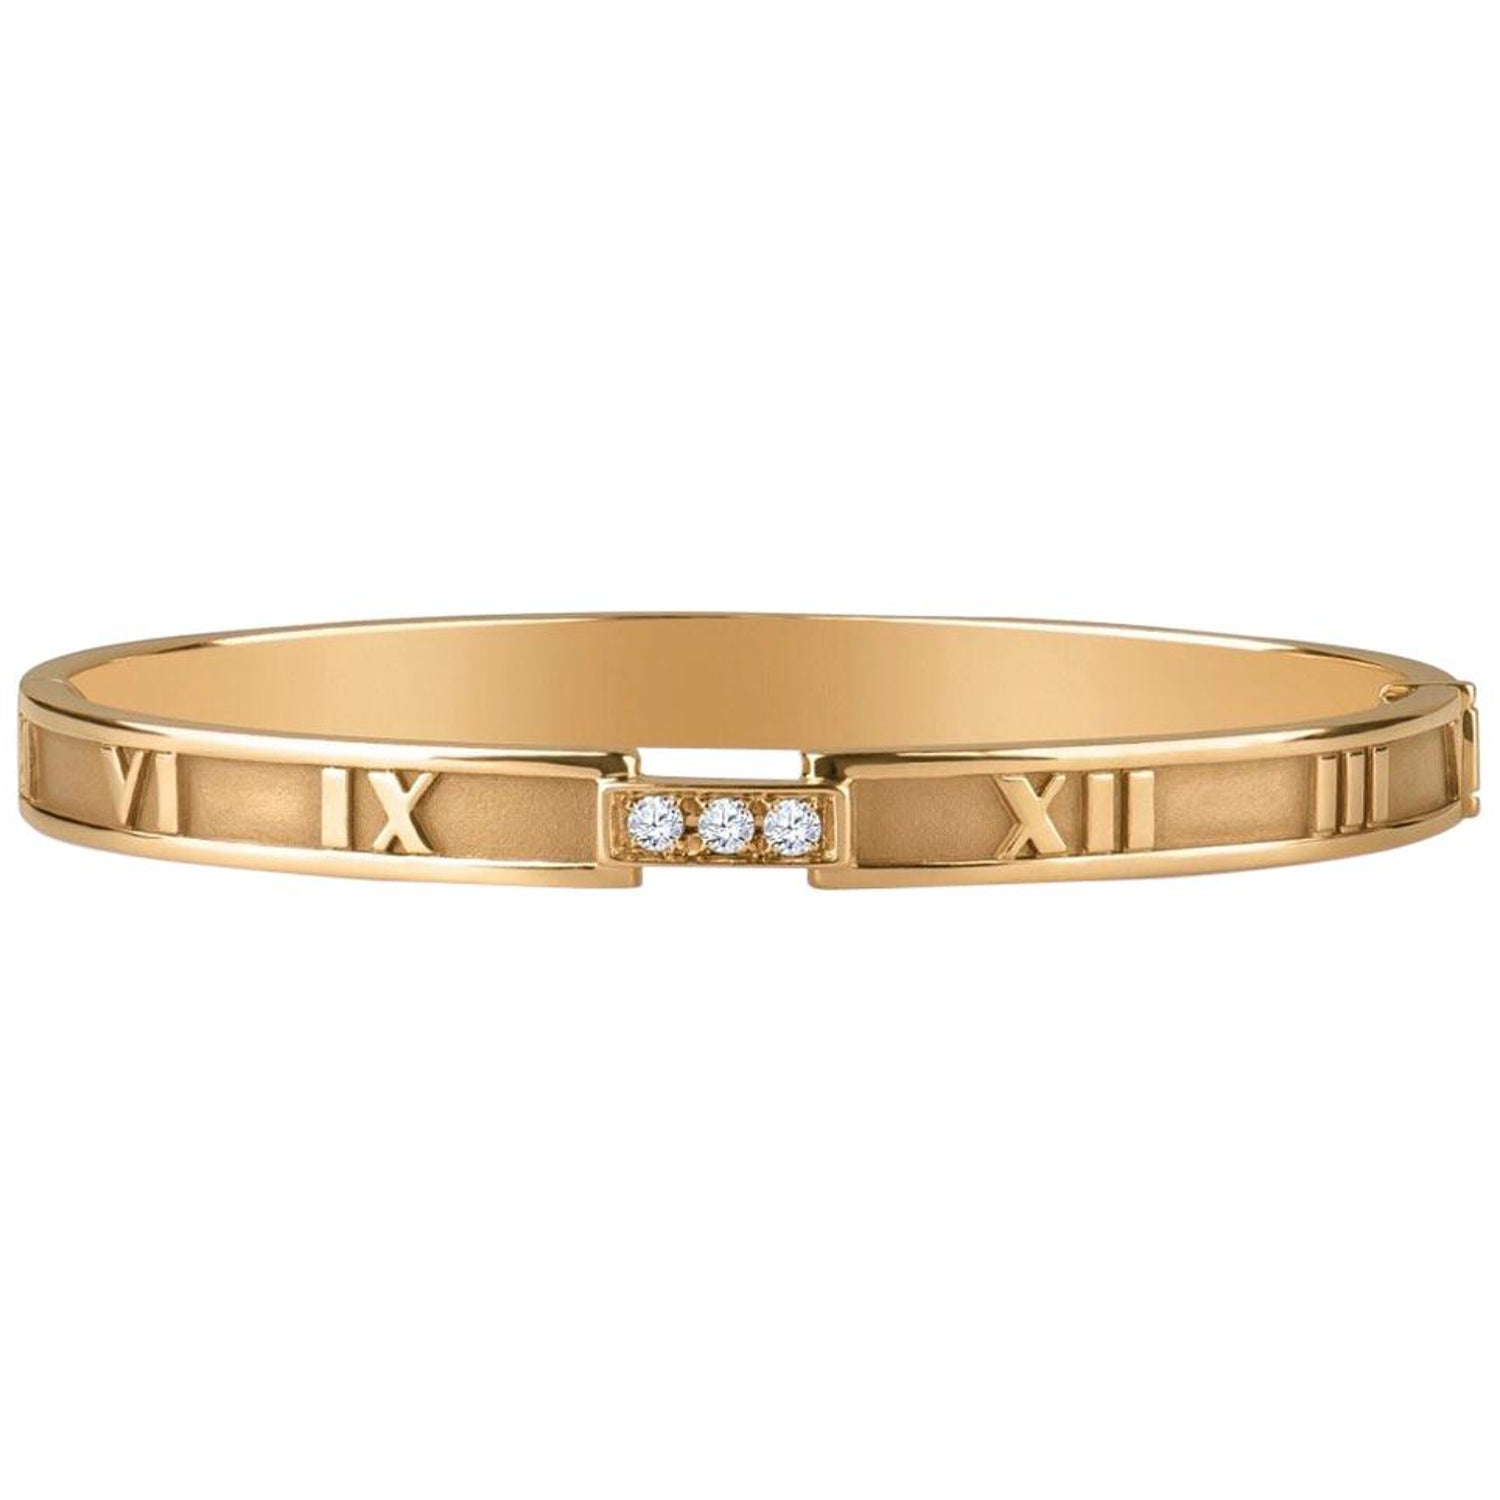 7589b11fd Tiffany and Co. 18k Atlas Closed Hinged Bangle with 3 Round Diamonds,  0.15CTW at 1stdibs